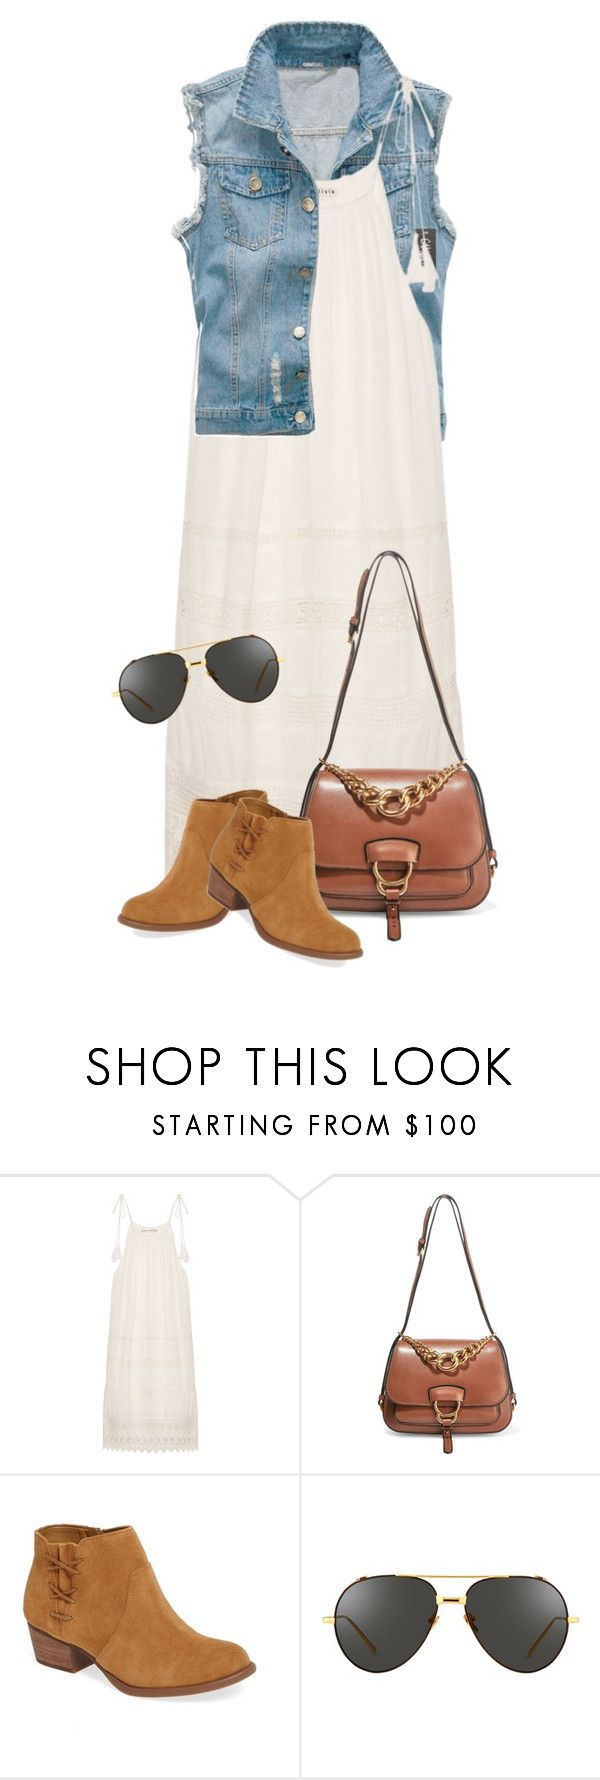 """""""Oh the Ivory"""" by indirareeves on Polyvore featuring Alice + Olivia, Miu Miu, Jessica Simpson and Linda Farrow"""